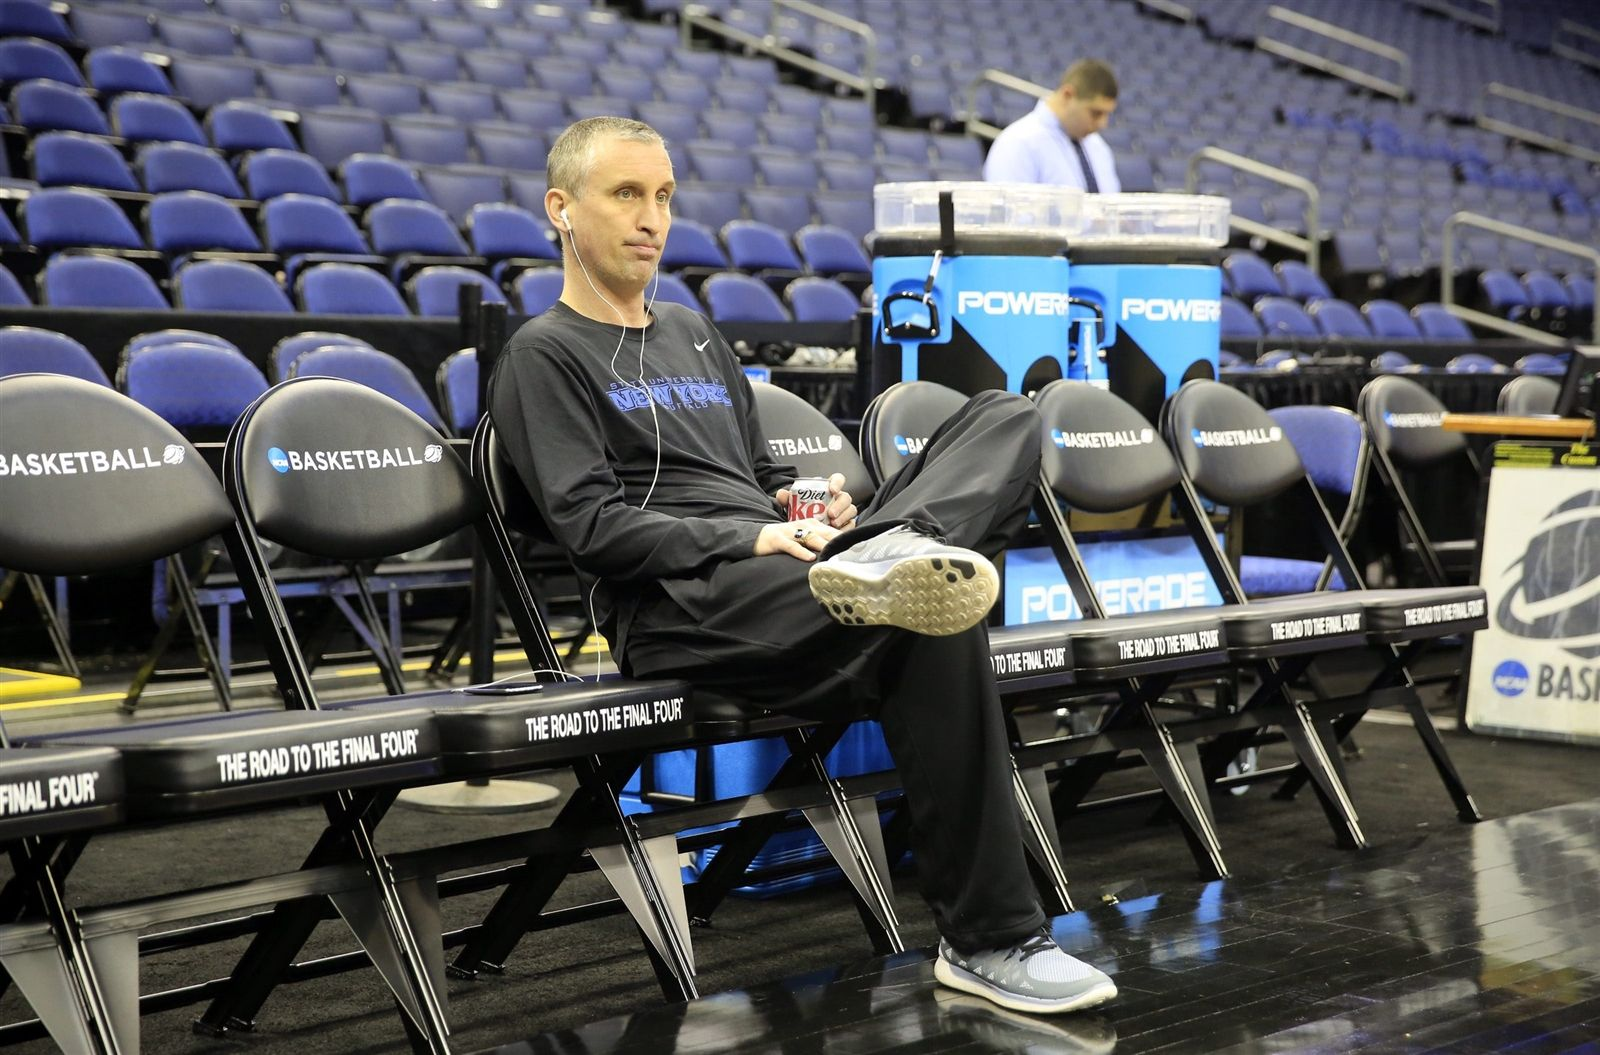 UB coach Bobby Hurley sits on the bench.